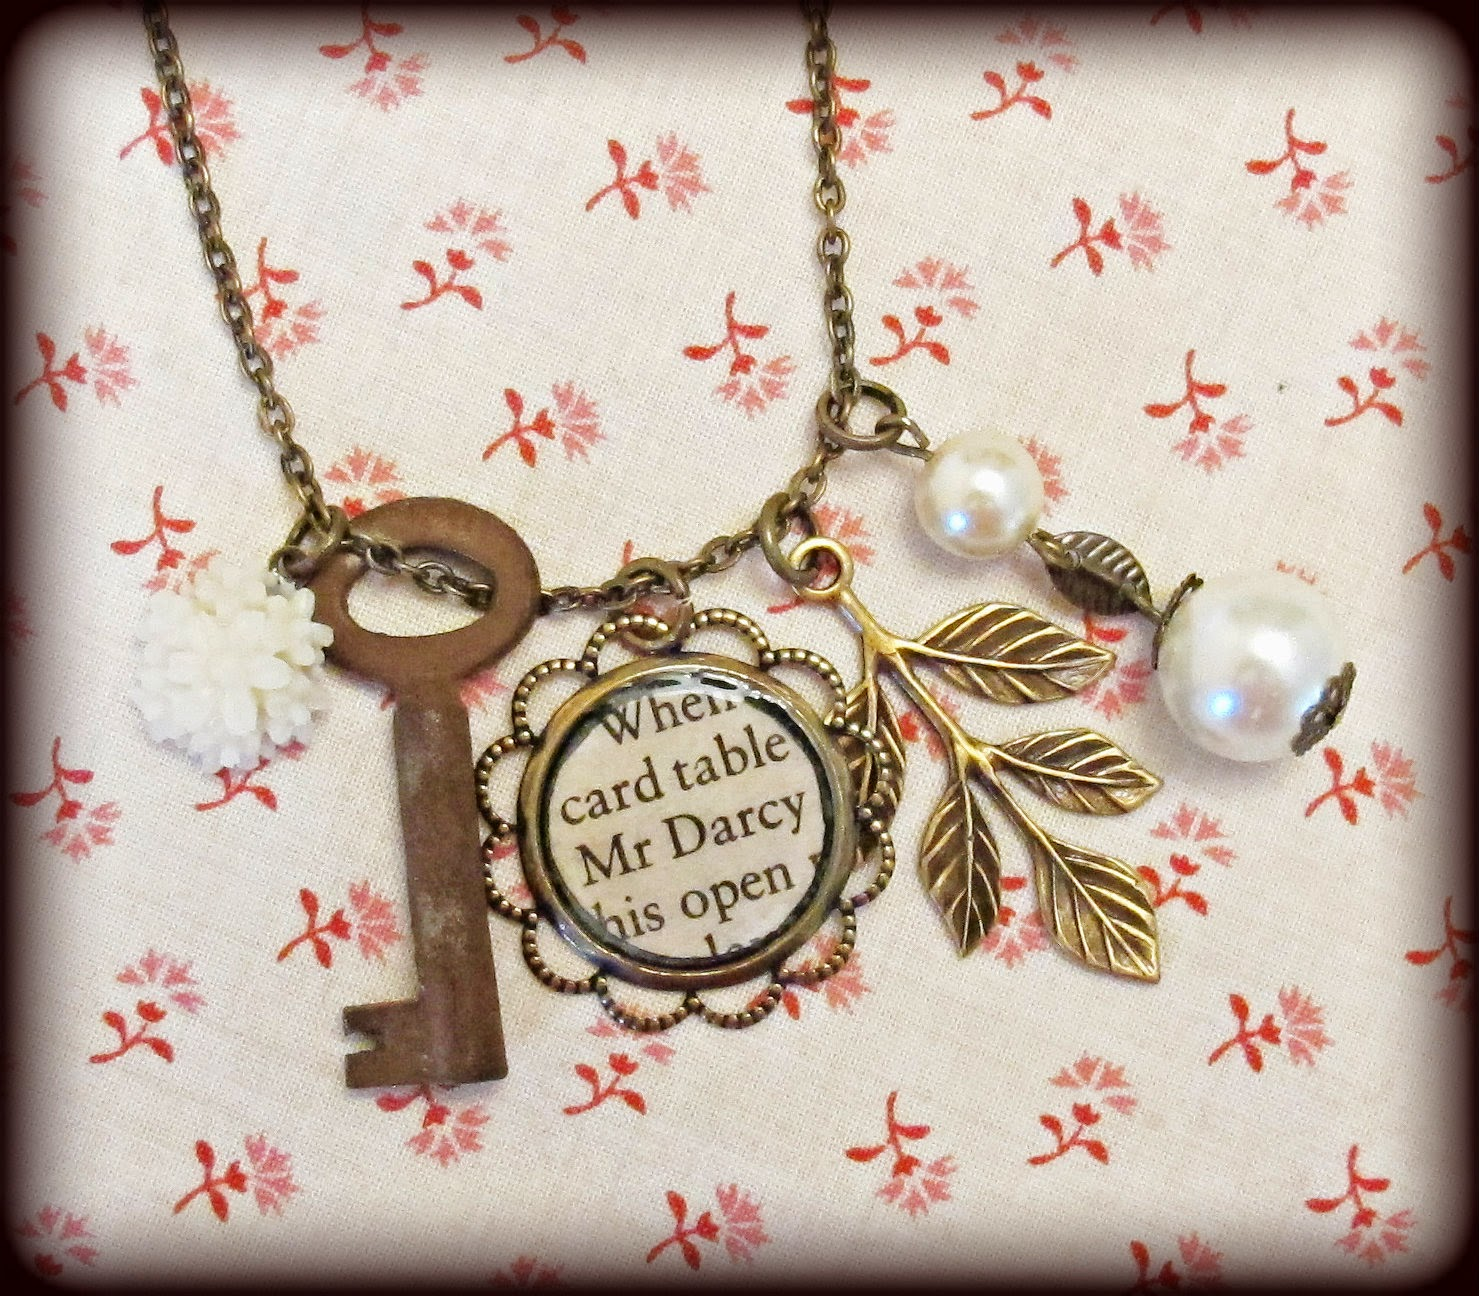 image mr darcy charm necklace jane austen pride and prejudice skeleton key pearls two cheeky monkeys